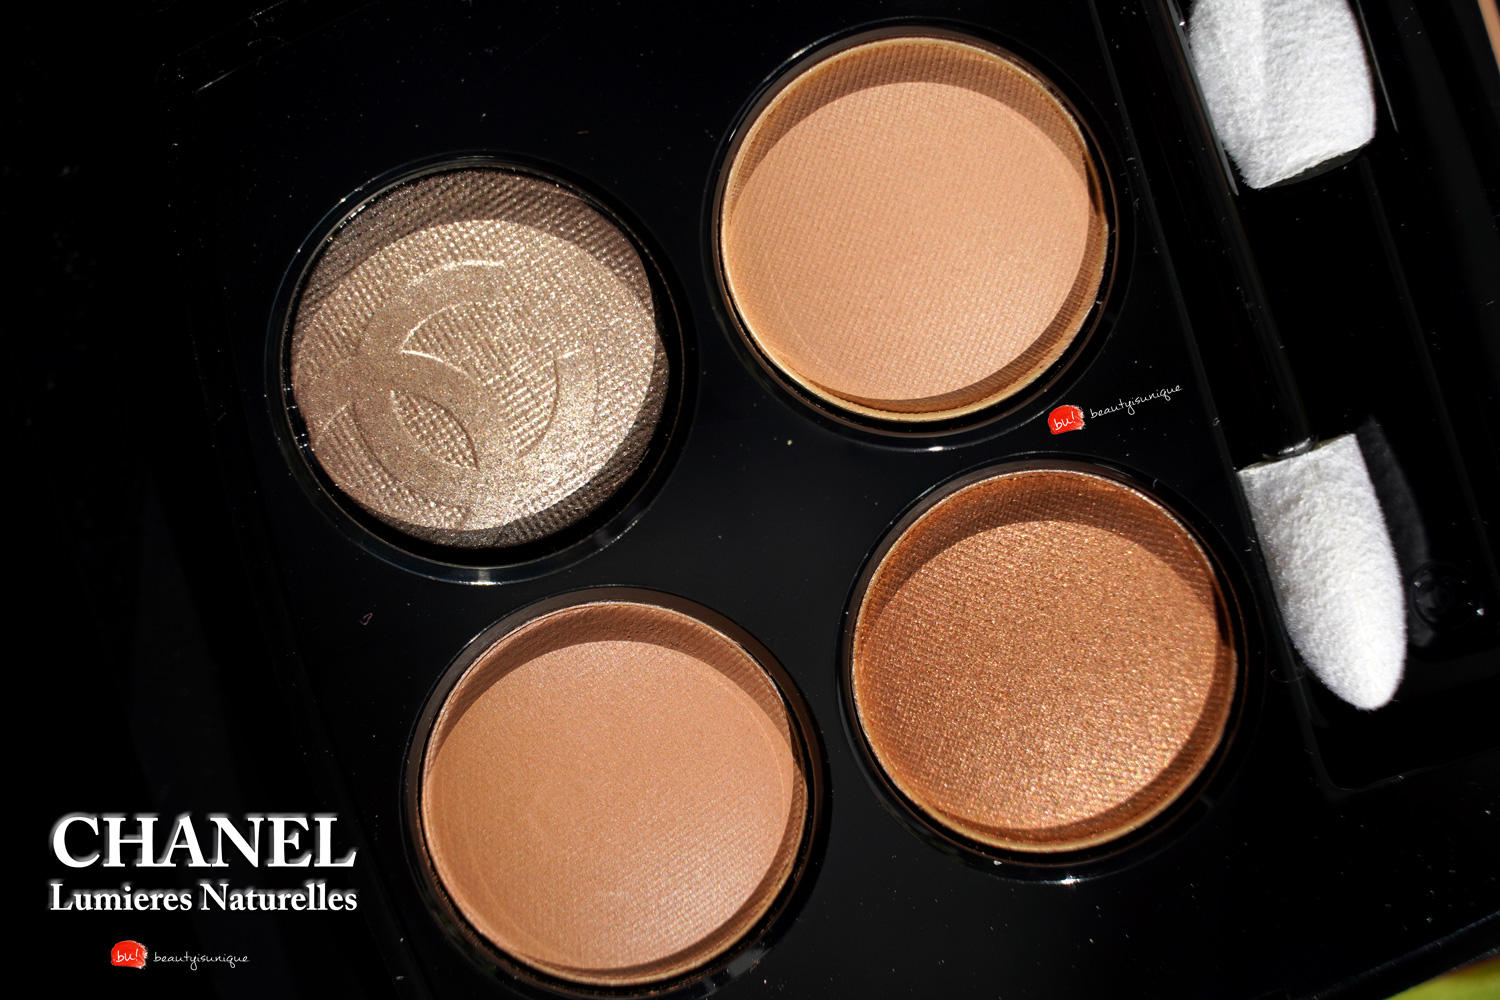 Chanel-lumieres-naturelles